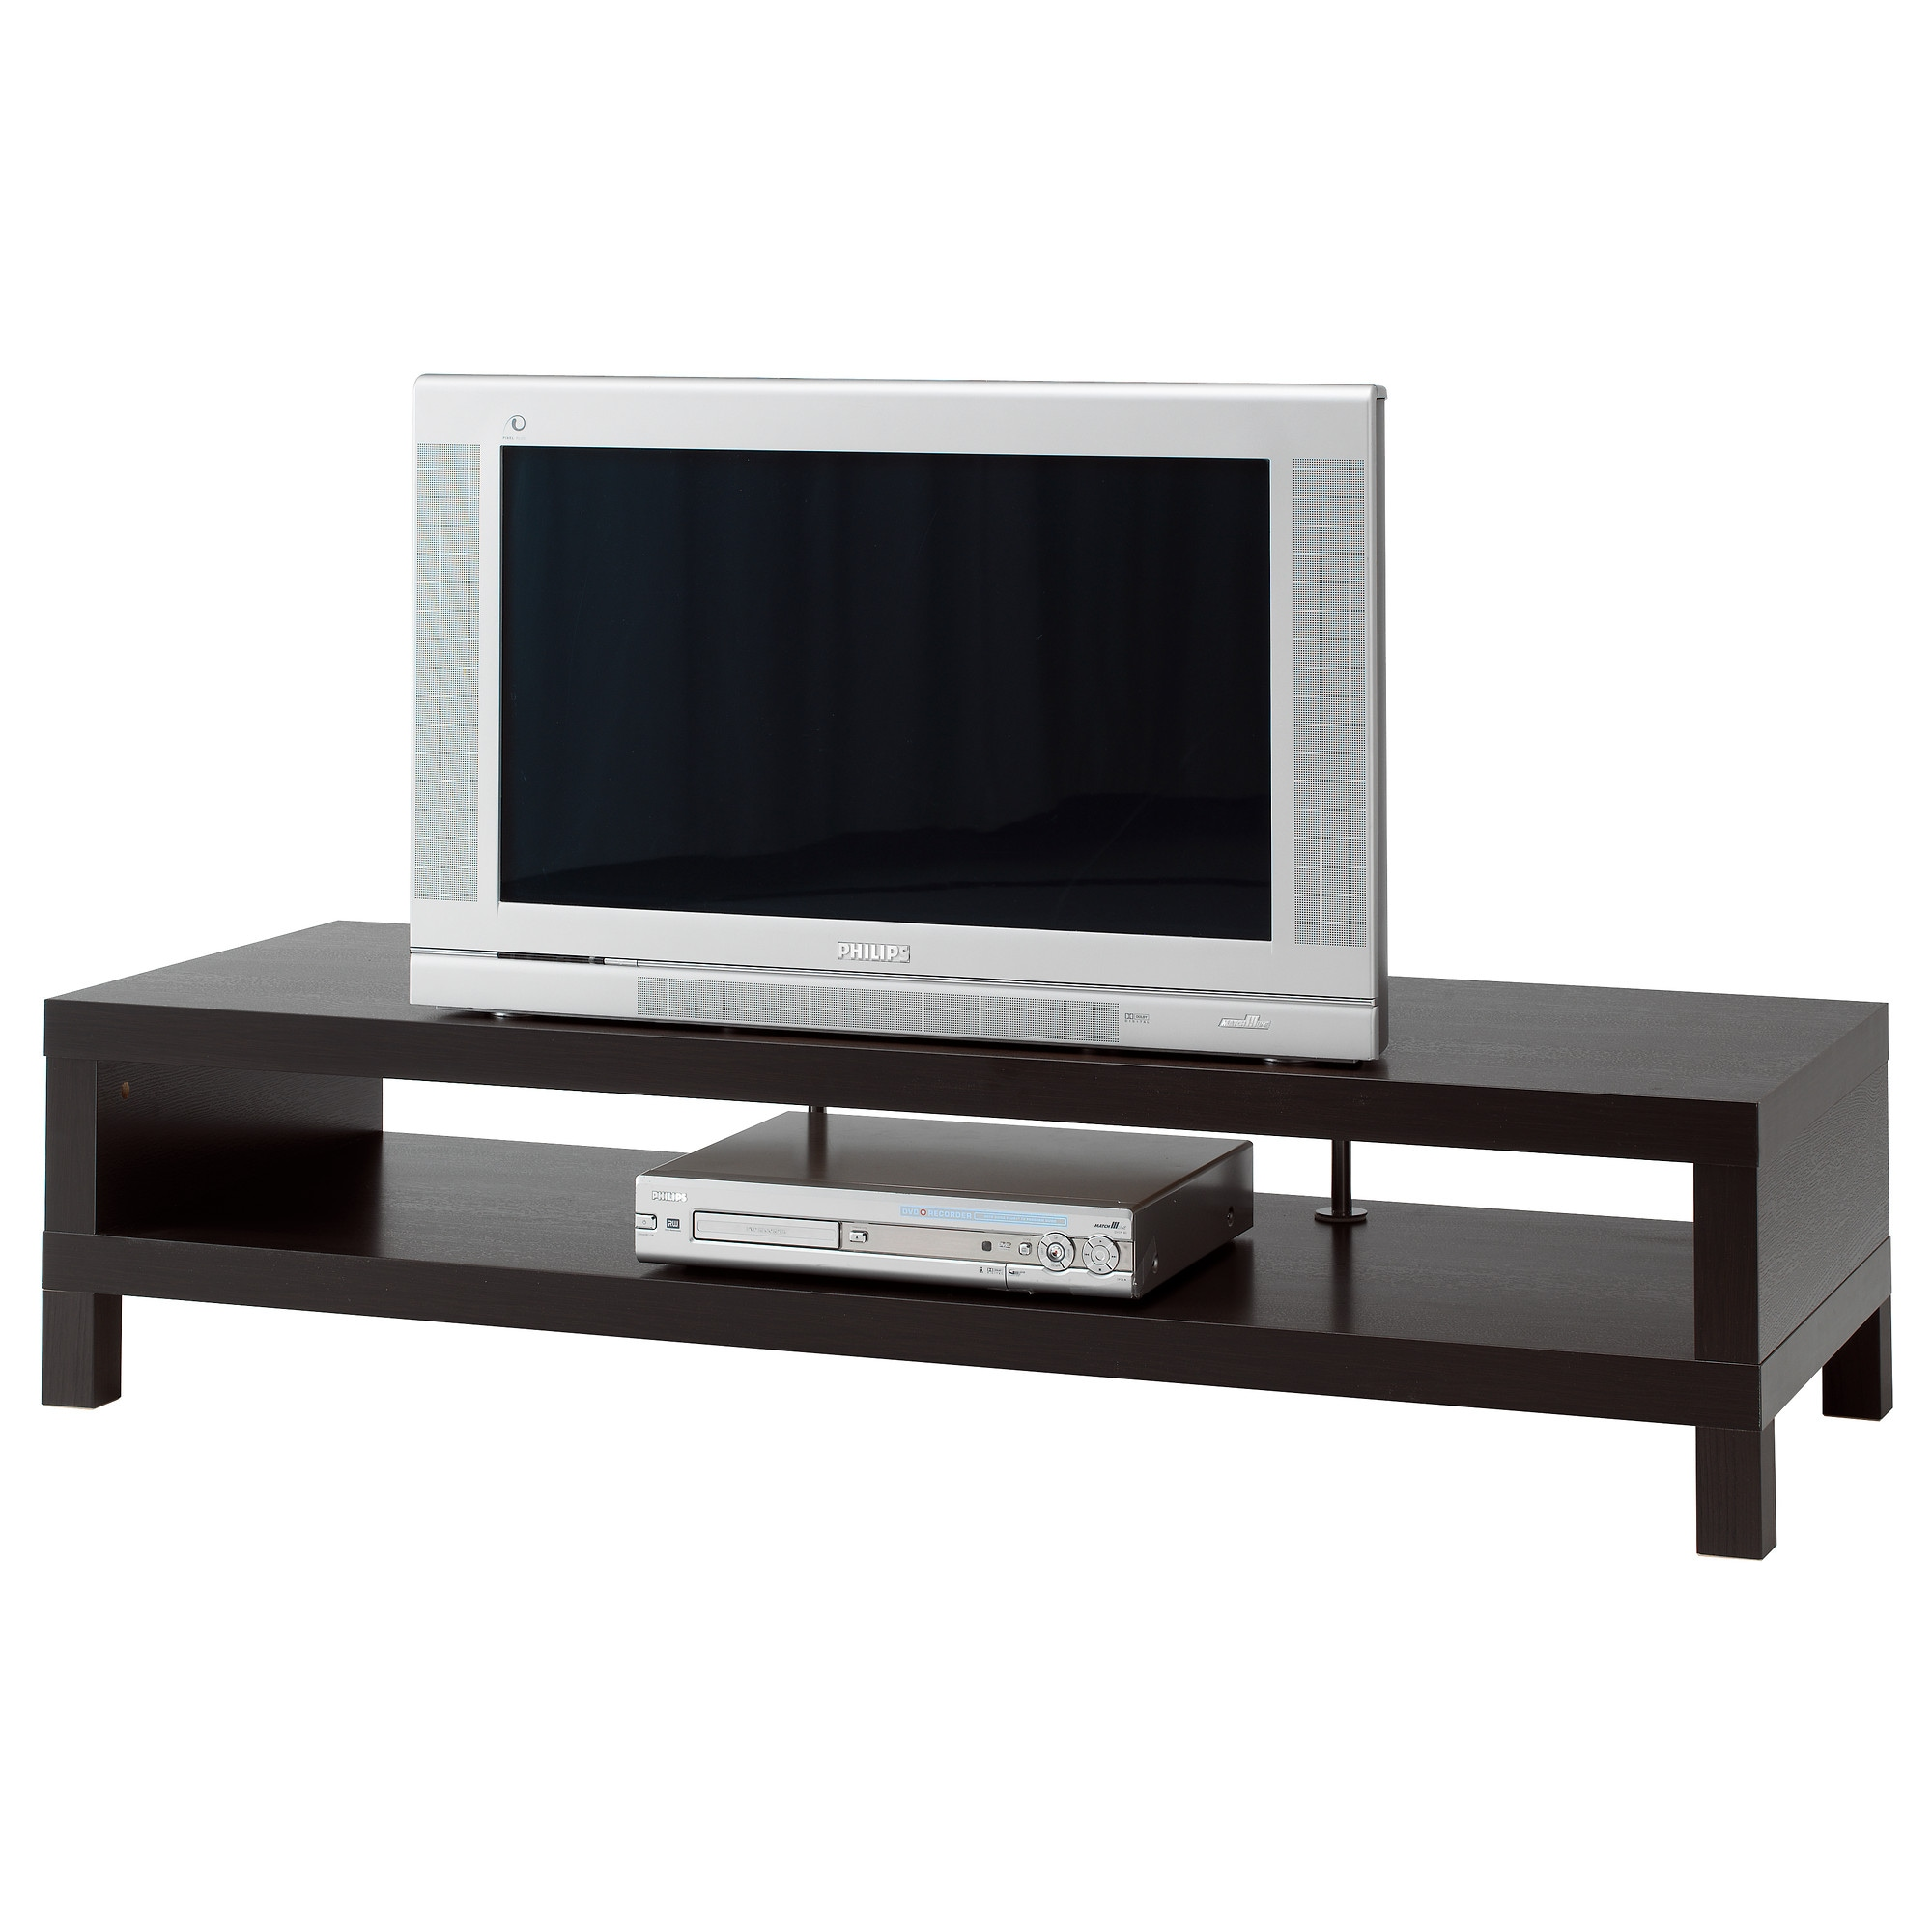 Lack Tv Bench Ikea # Meuble Tv Philips